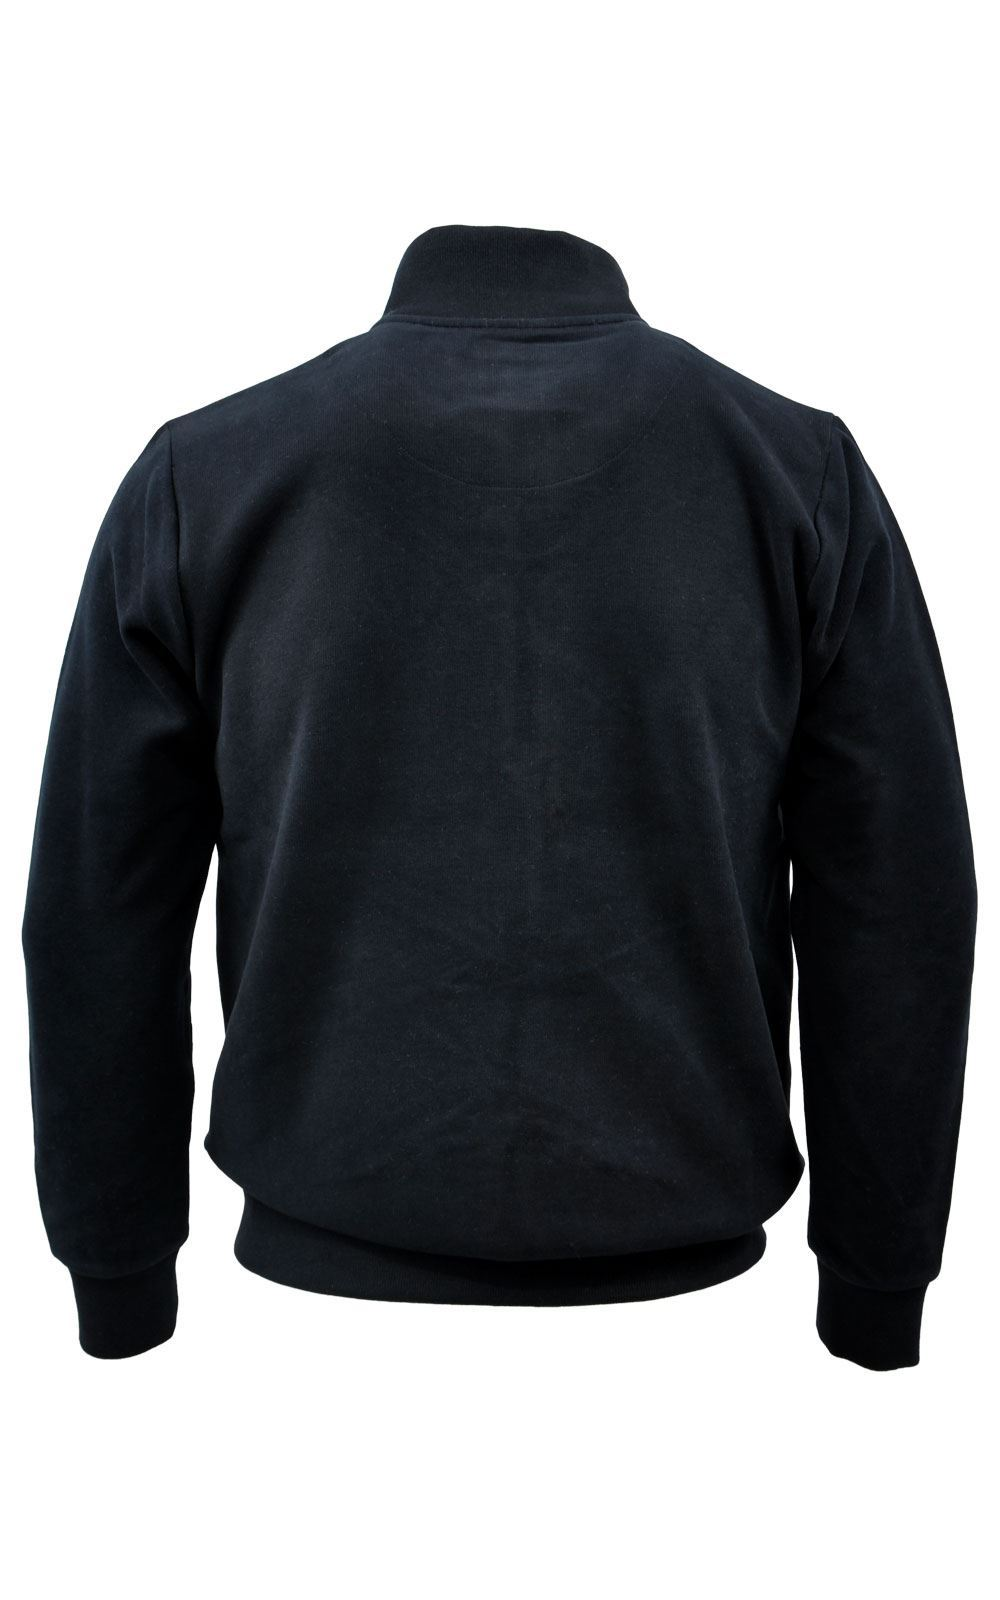 Picture of Douglas Full Zip Sweatshirt 56435